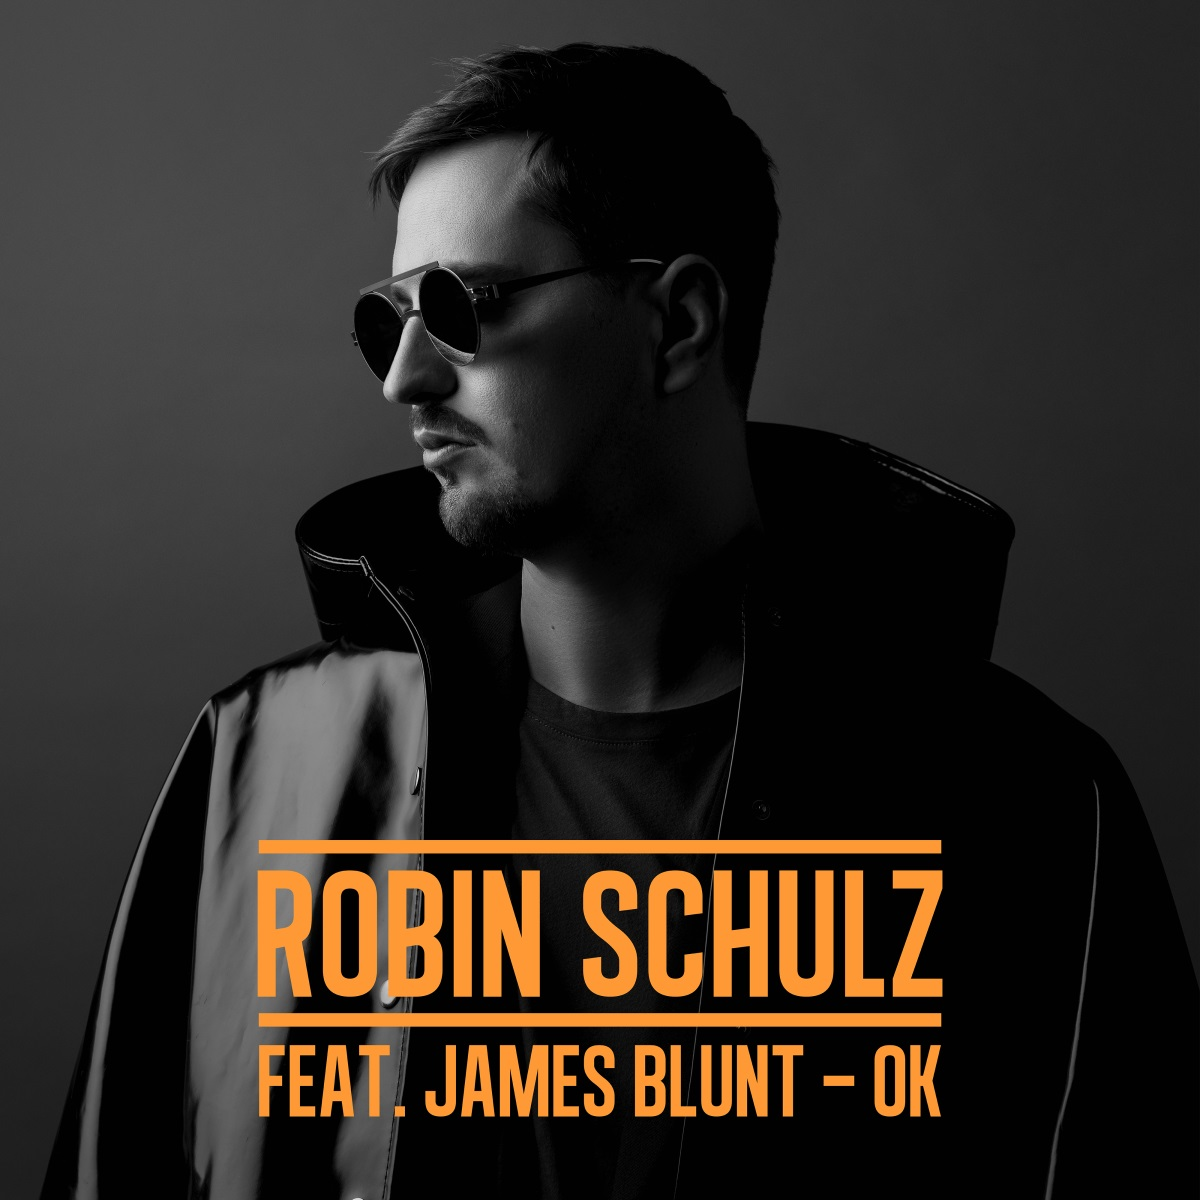 Cover: ROBIN SCHULZ FEAT. JAMES BLUNT, OK